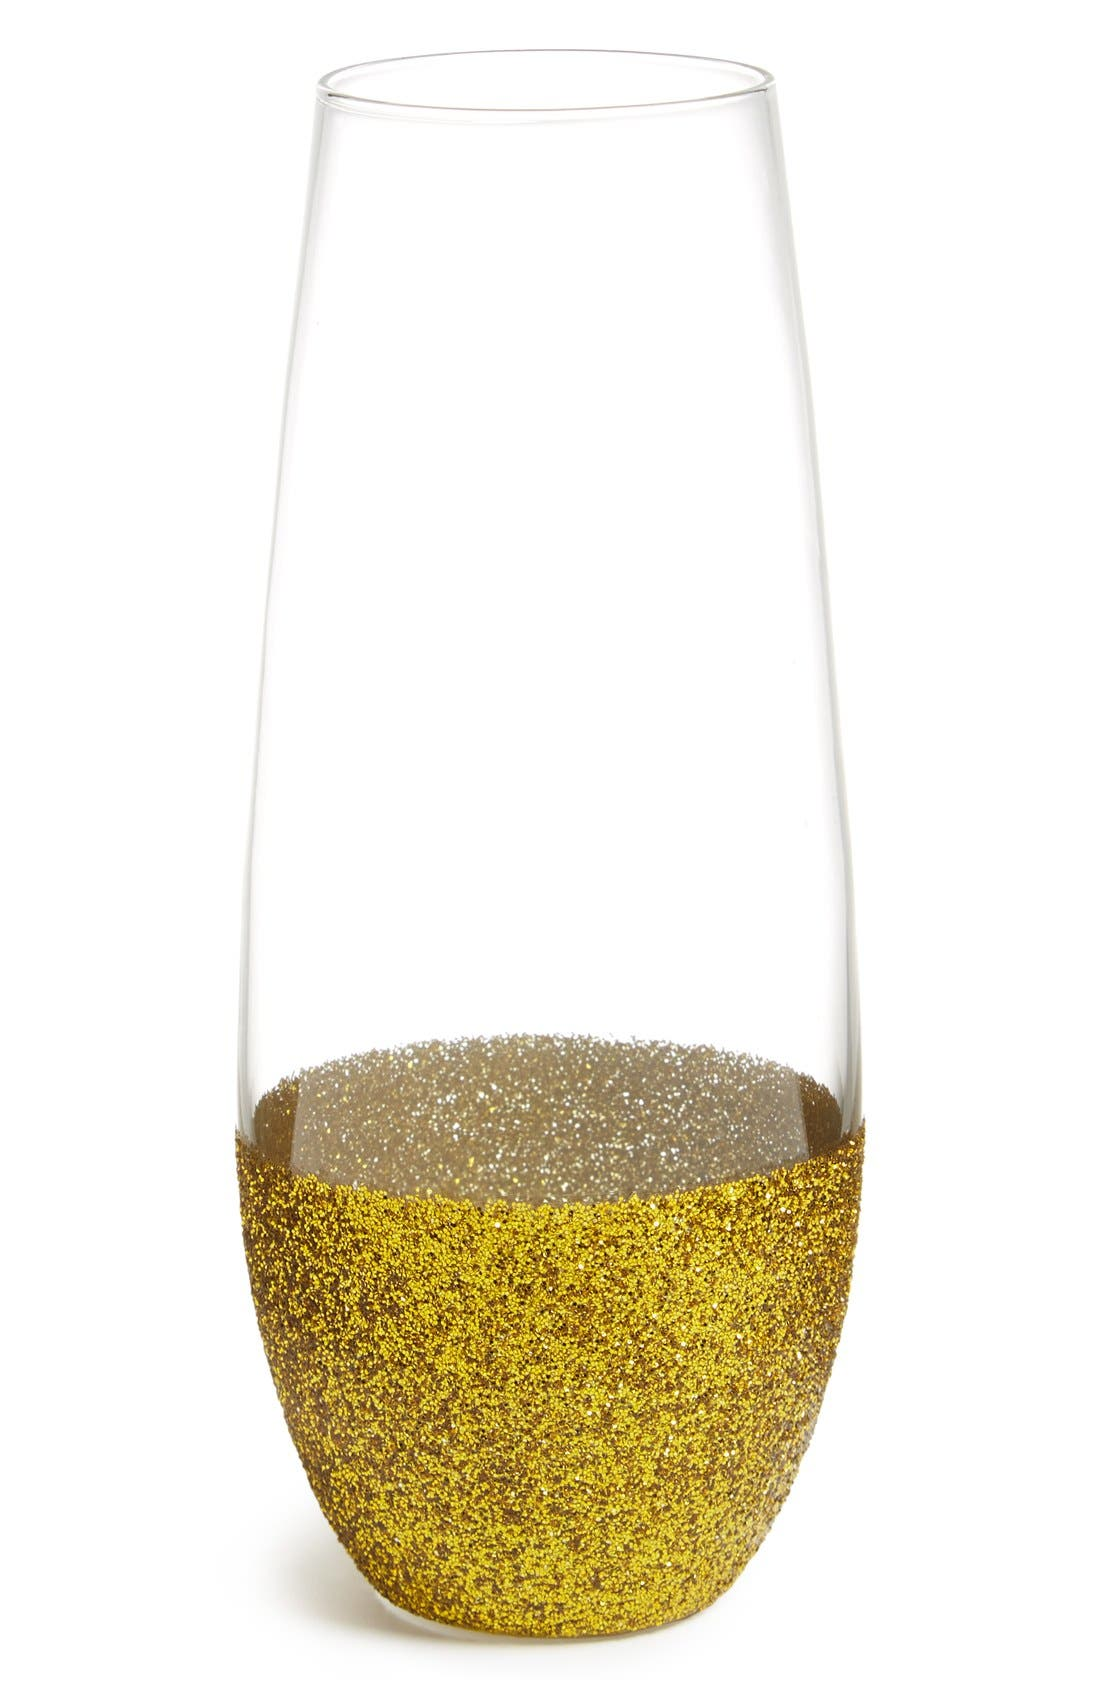 Alternate Image 1 Selected - Slant Collections 'Glitter' Stemless Champagne Glass